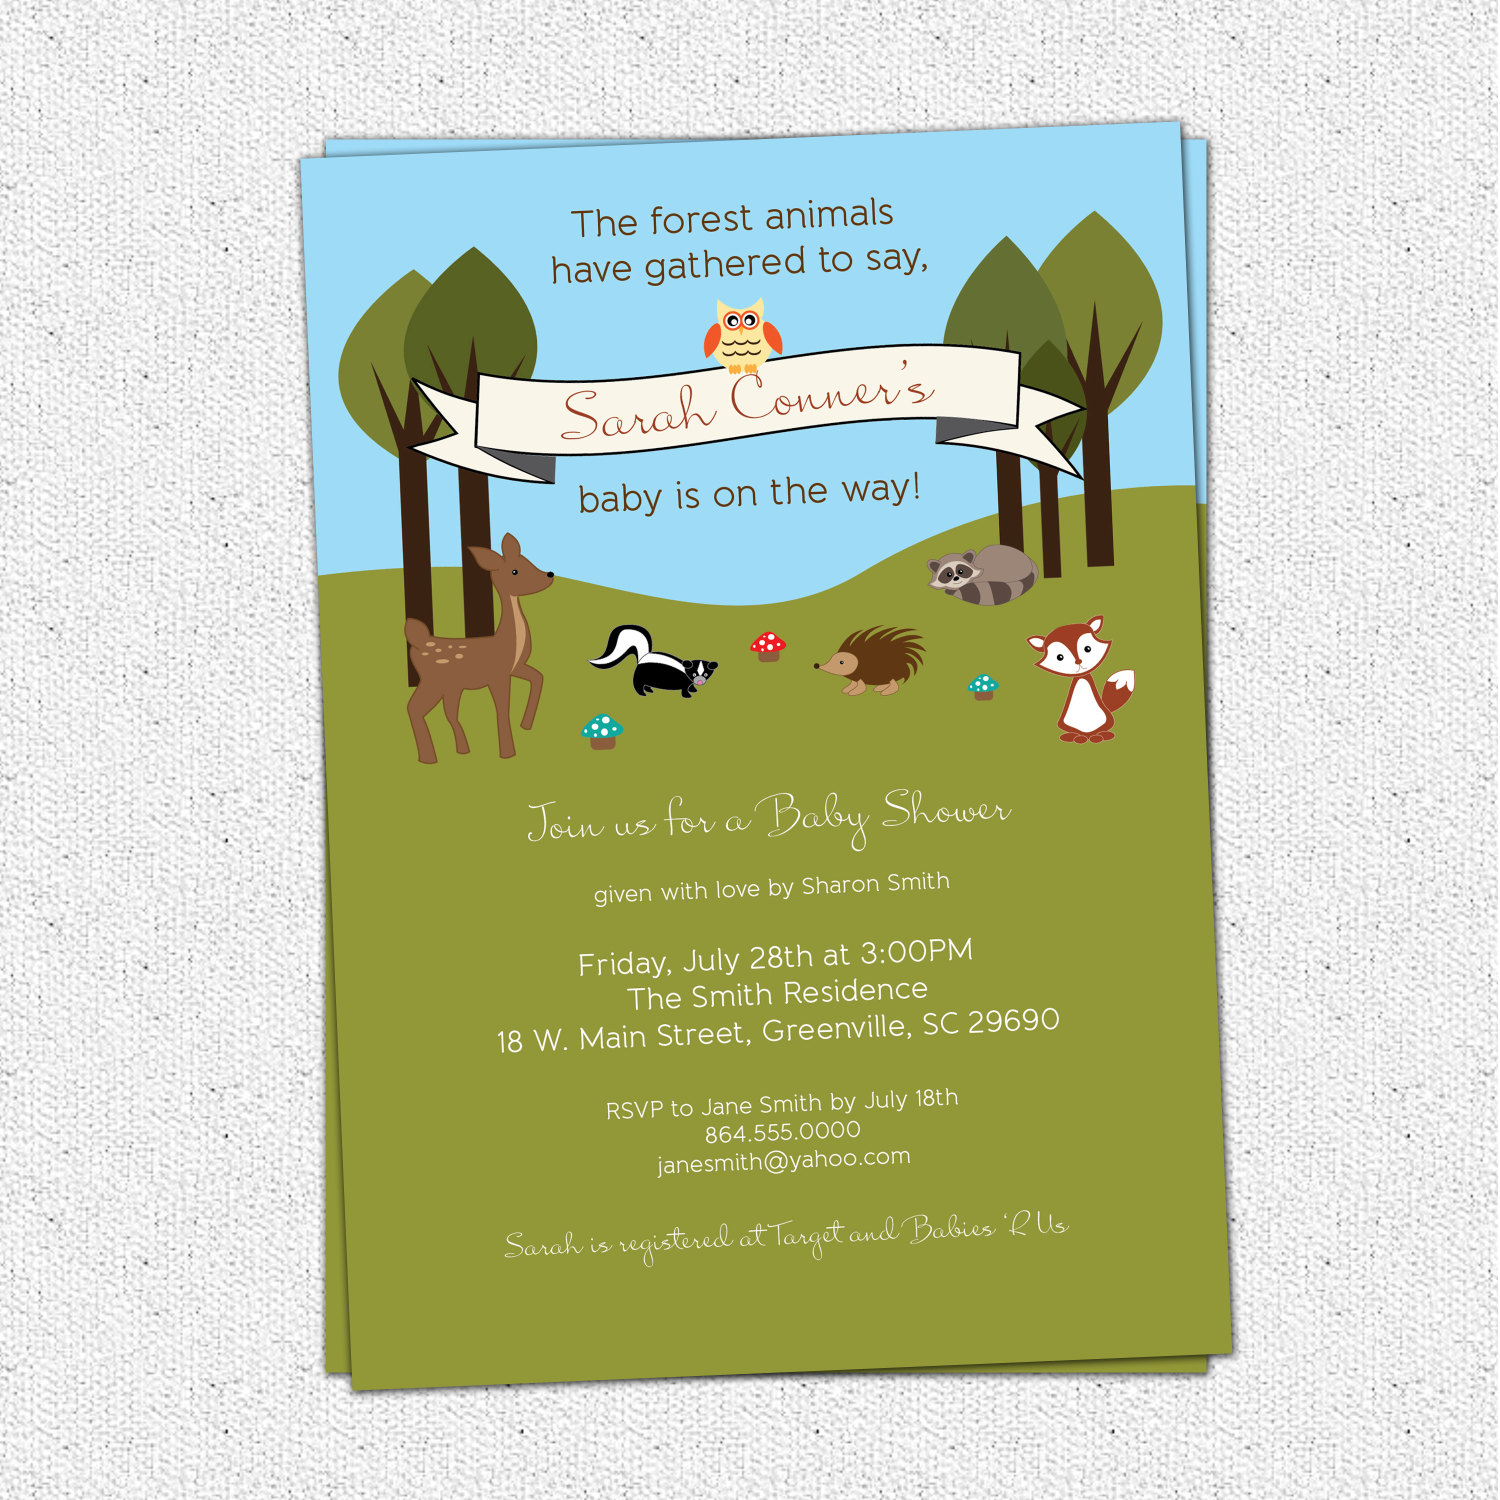 baby shower invitations woodland animals creatures forest deer owl squirrel fox